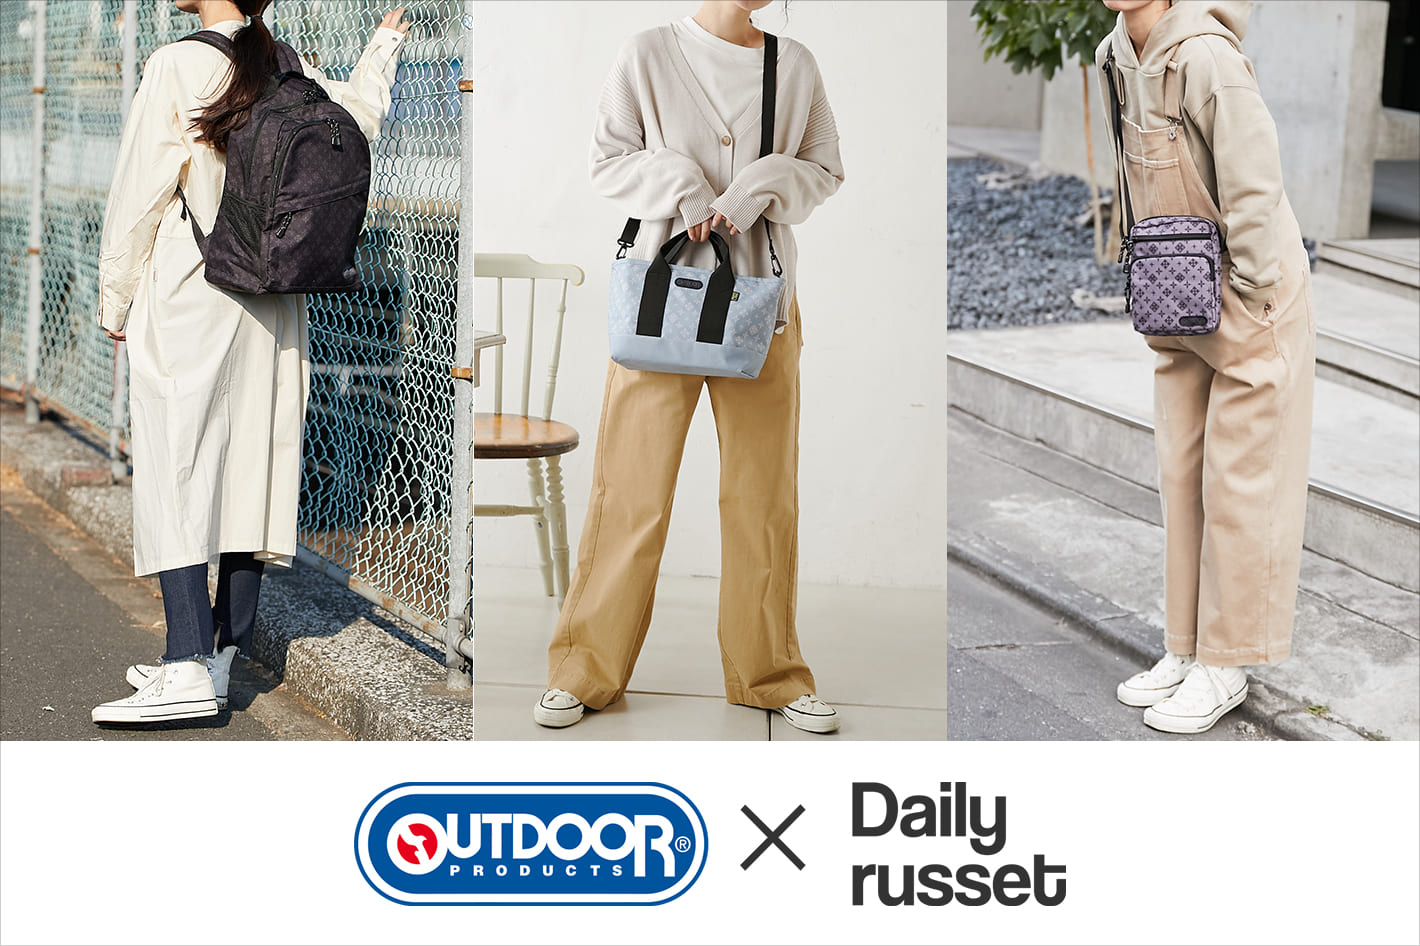 Daily russet ◆OUTDOOR PRODUCTS×Dailyrusset◆コラボアイテムが発売開始!